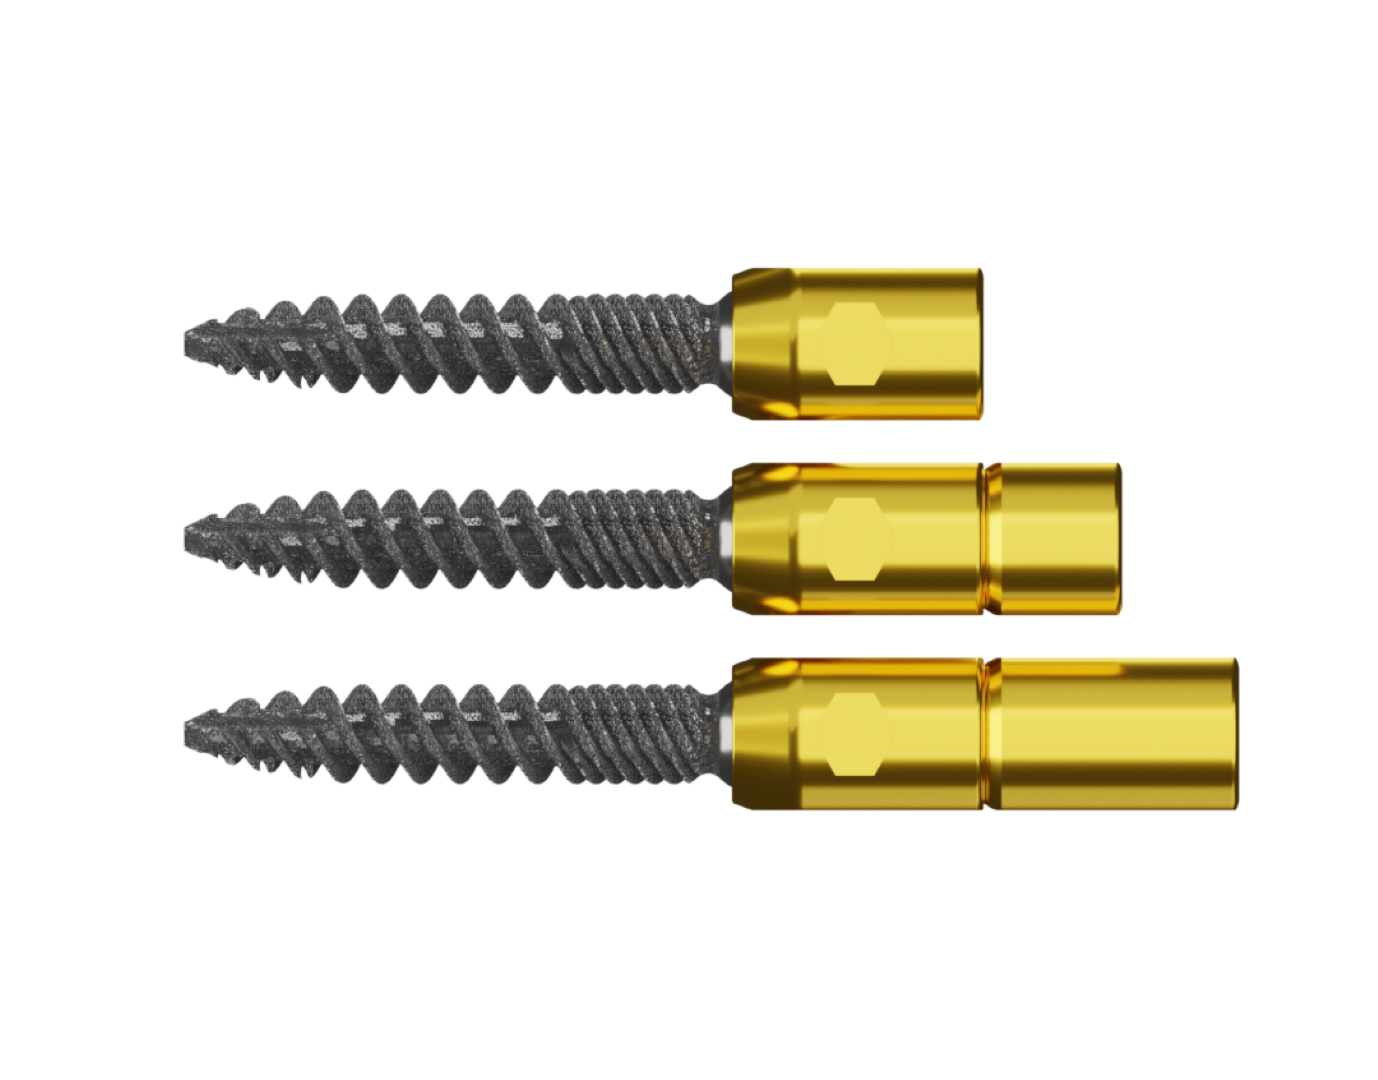 Low top, Reduction, and super reduction pedicle screws with gold tulip and surfaced screw.